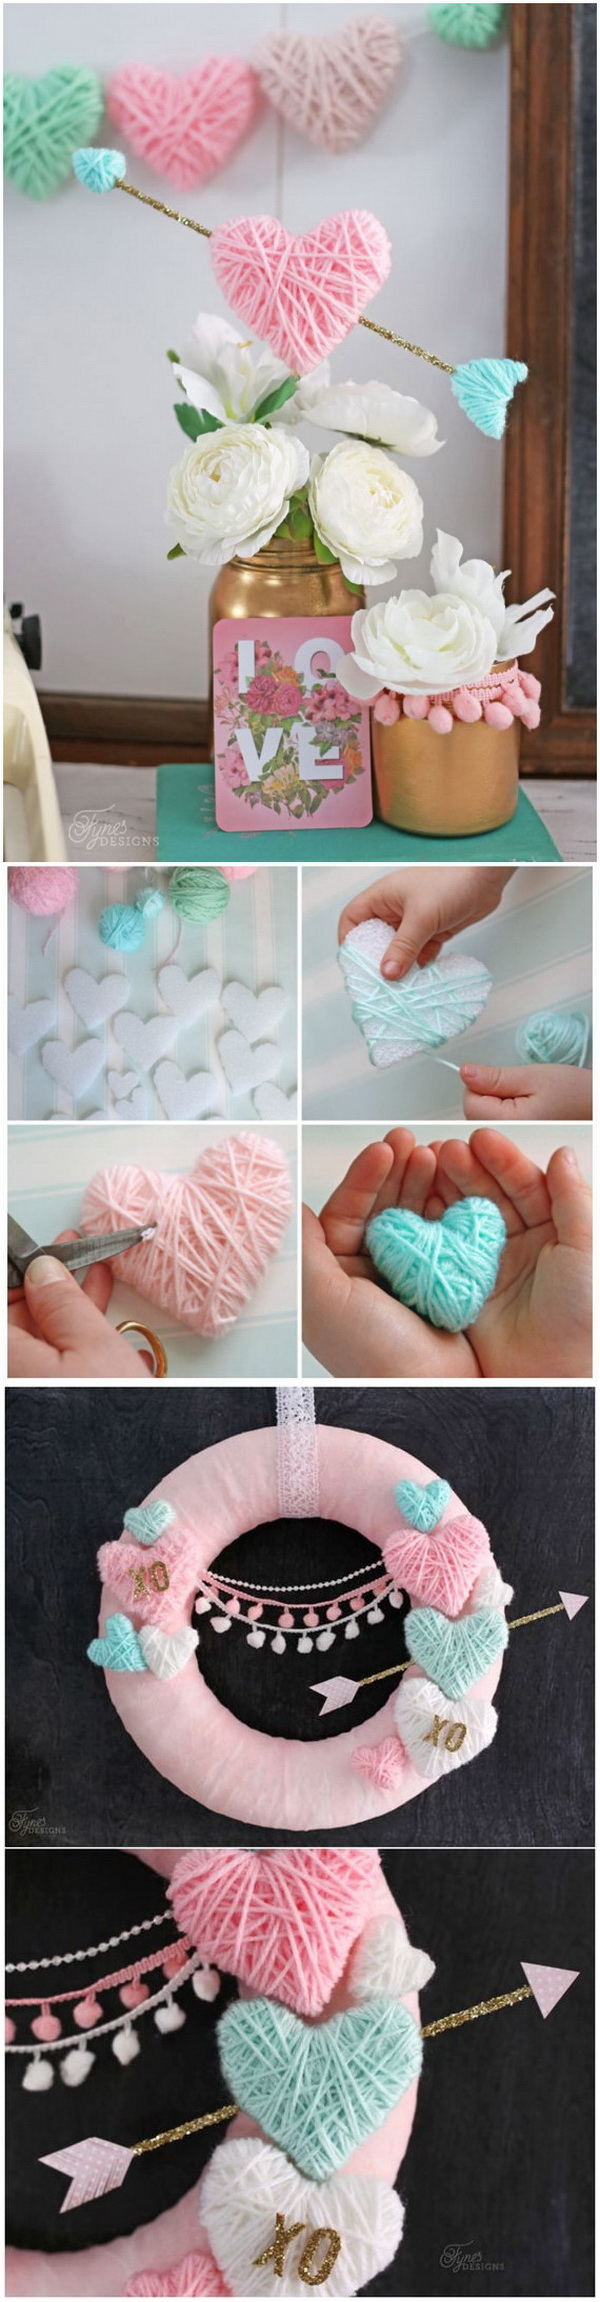 Valentine's Day Craft- Yarn Wrapped Hearts.